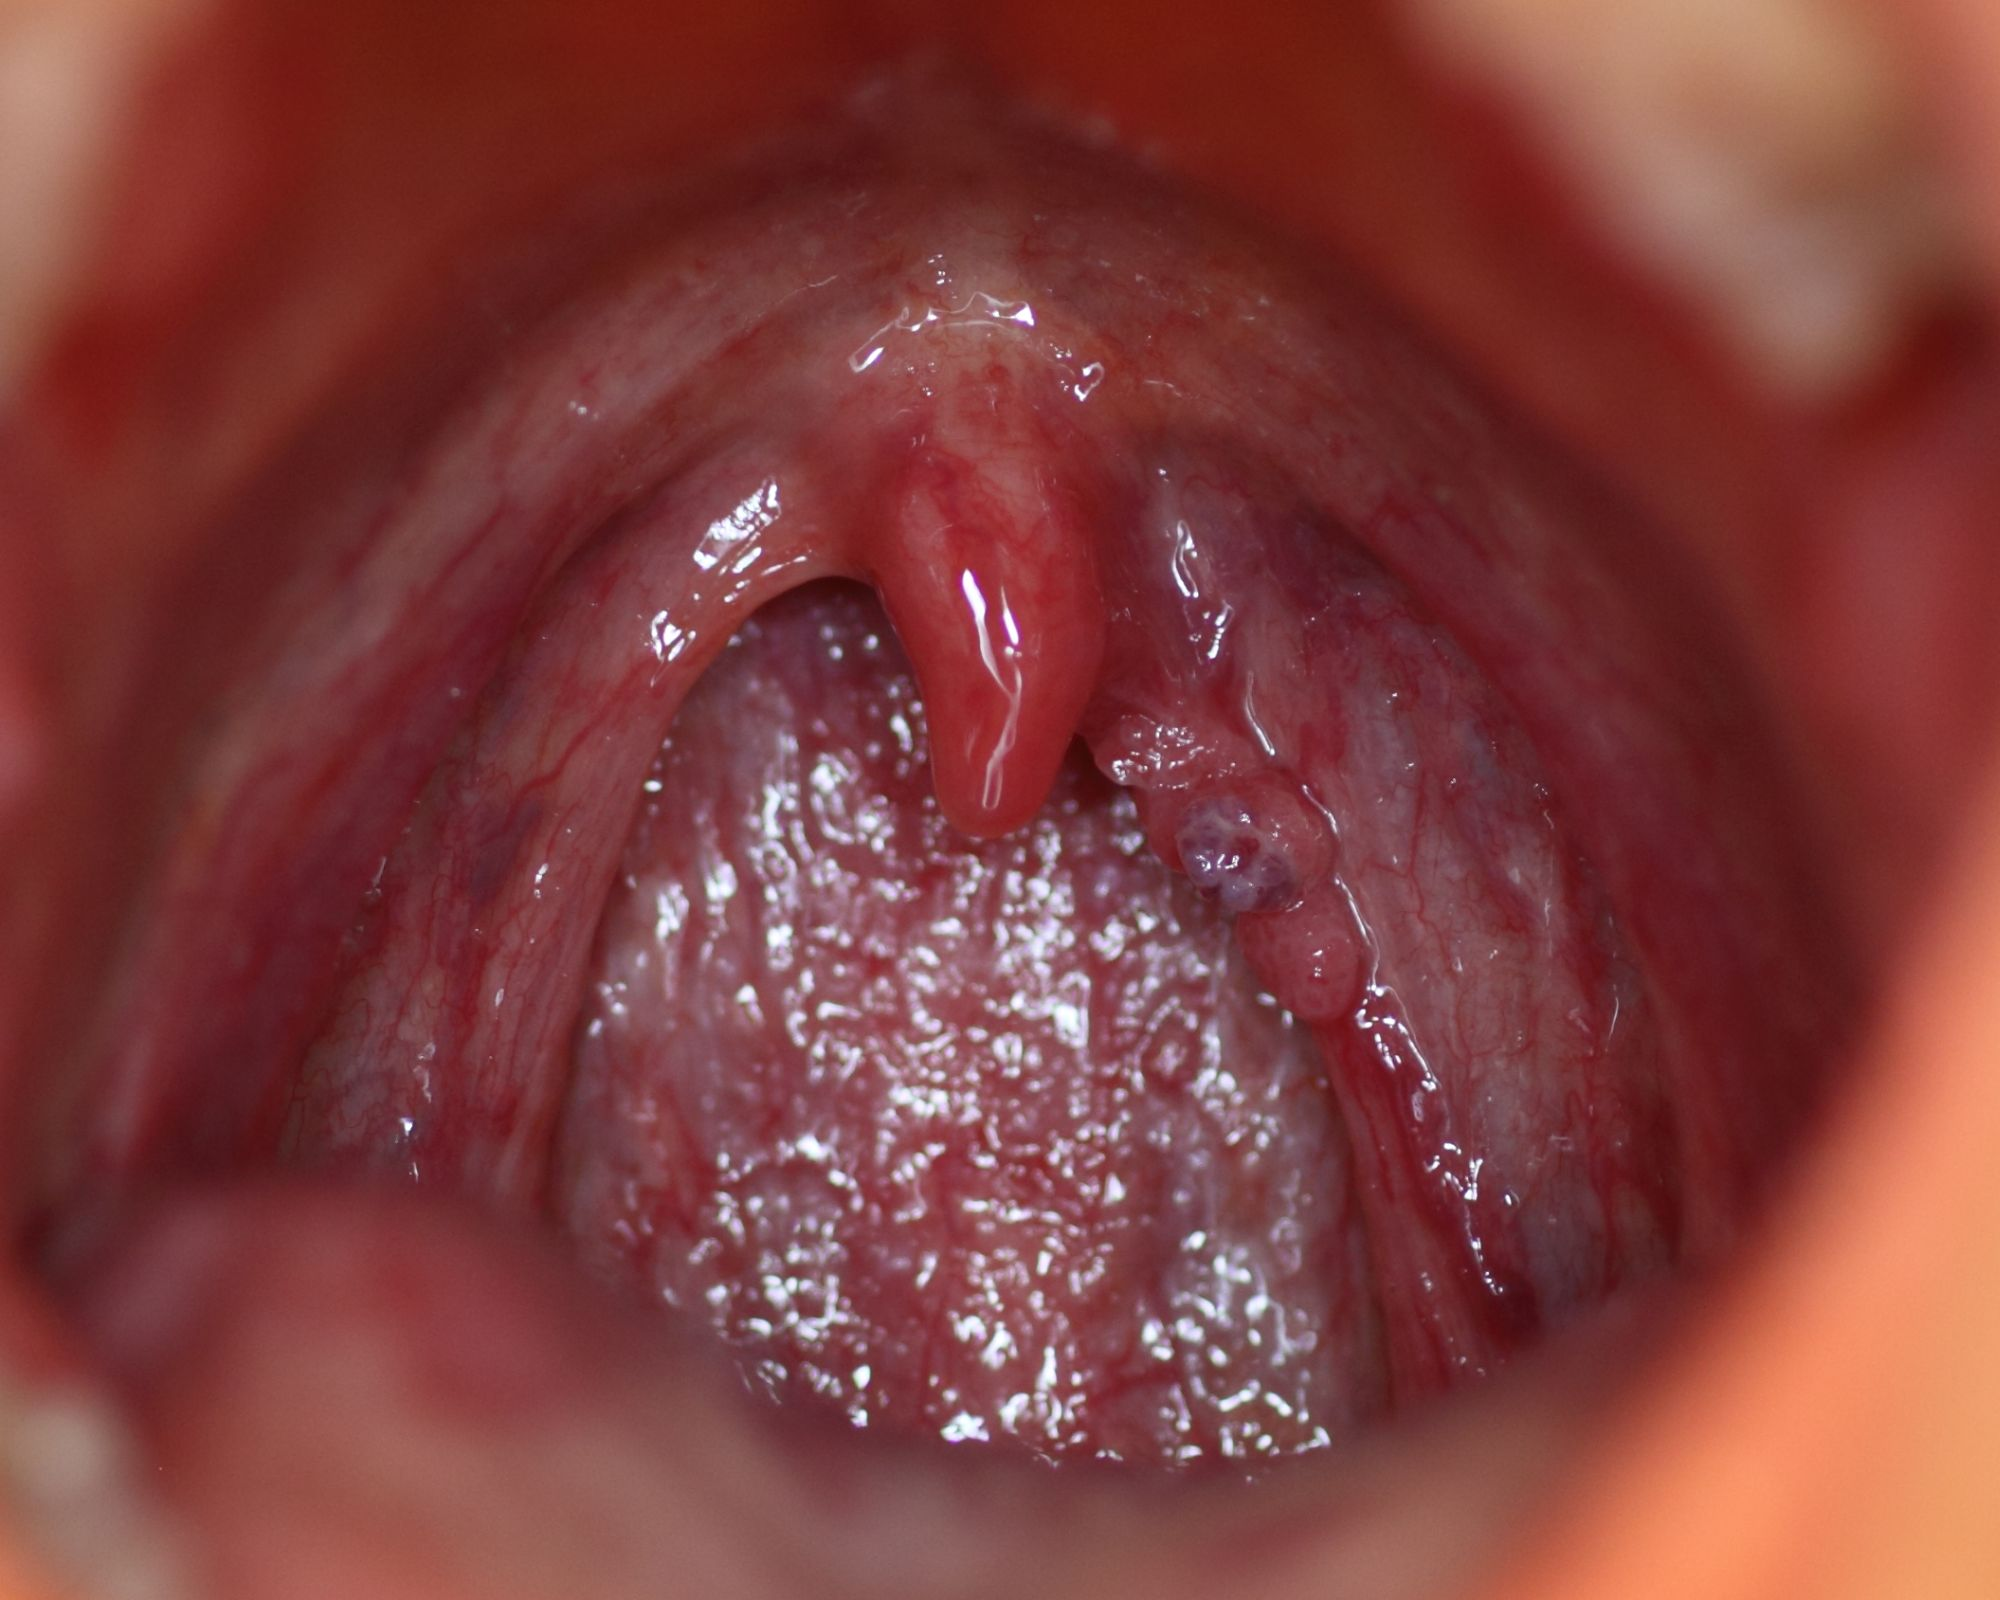 hpv in tongue pictures